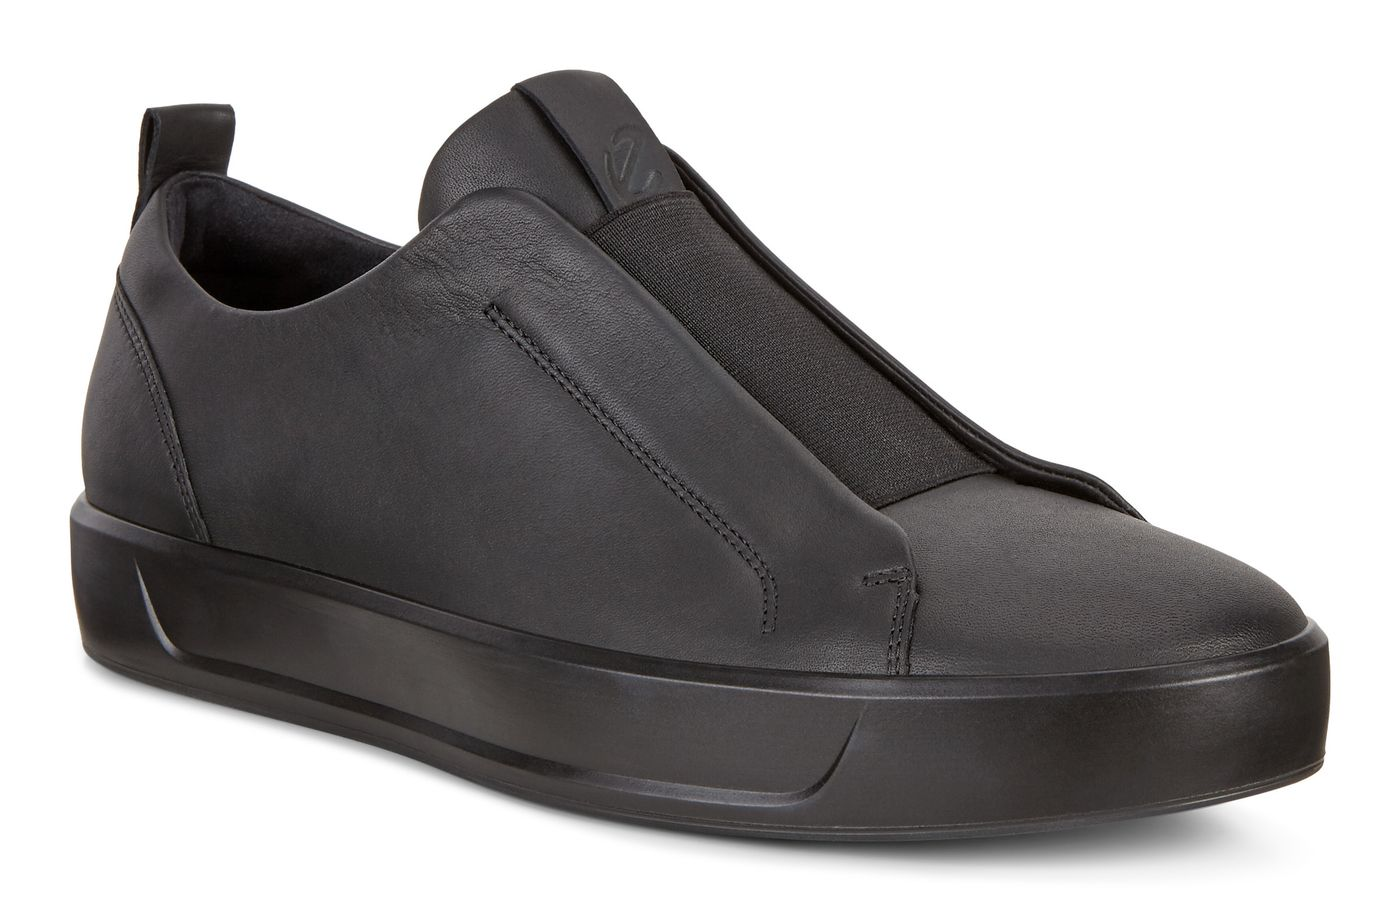 ECCO SOFT 8 M Slip-on | Men's Shoes